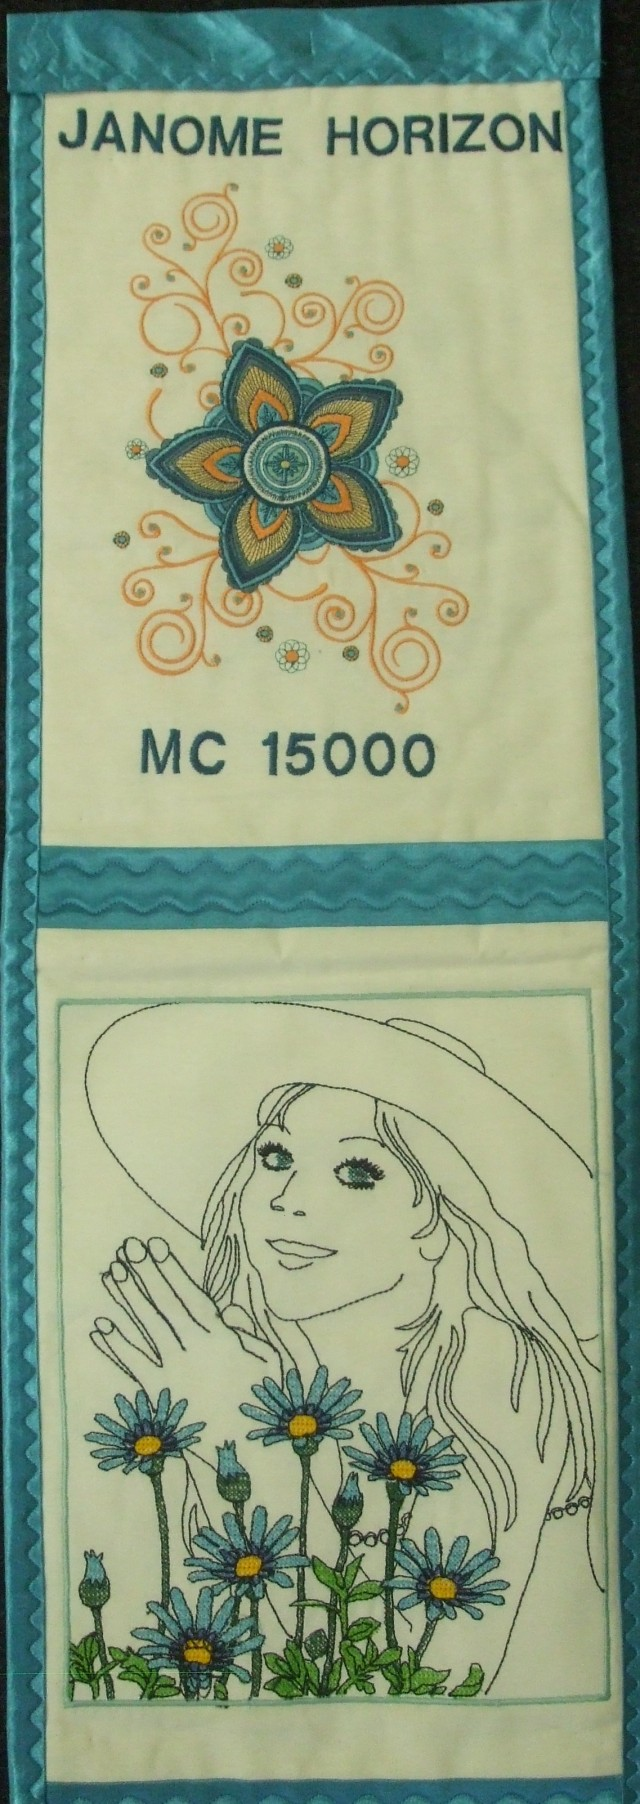 These are more wonderful embroidery designs on our wonderful NEW JANOME MC 15000